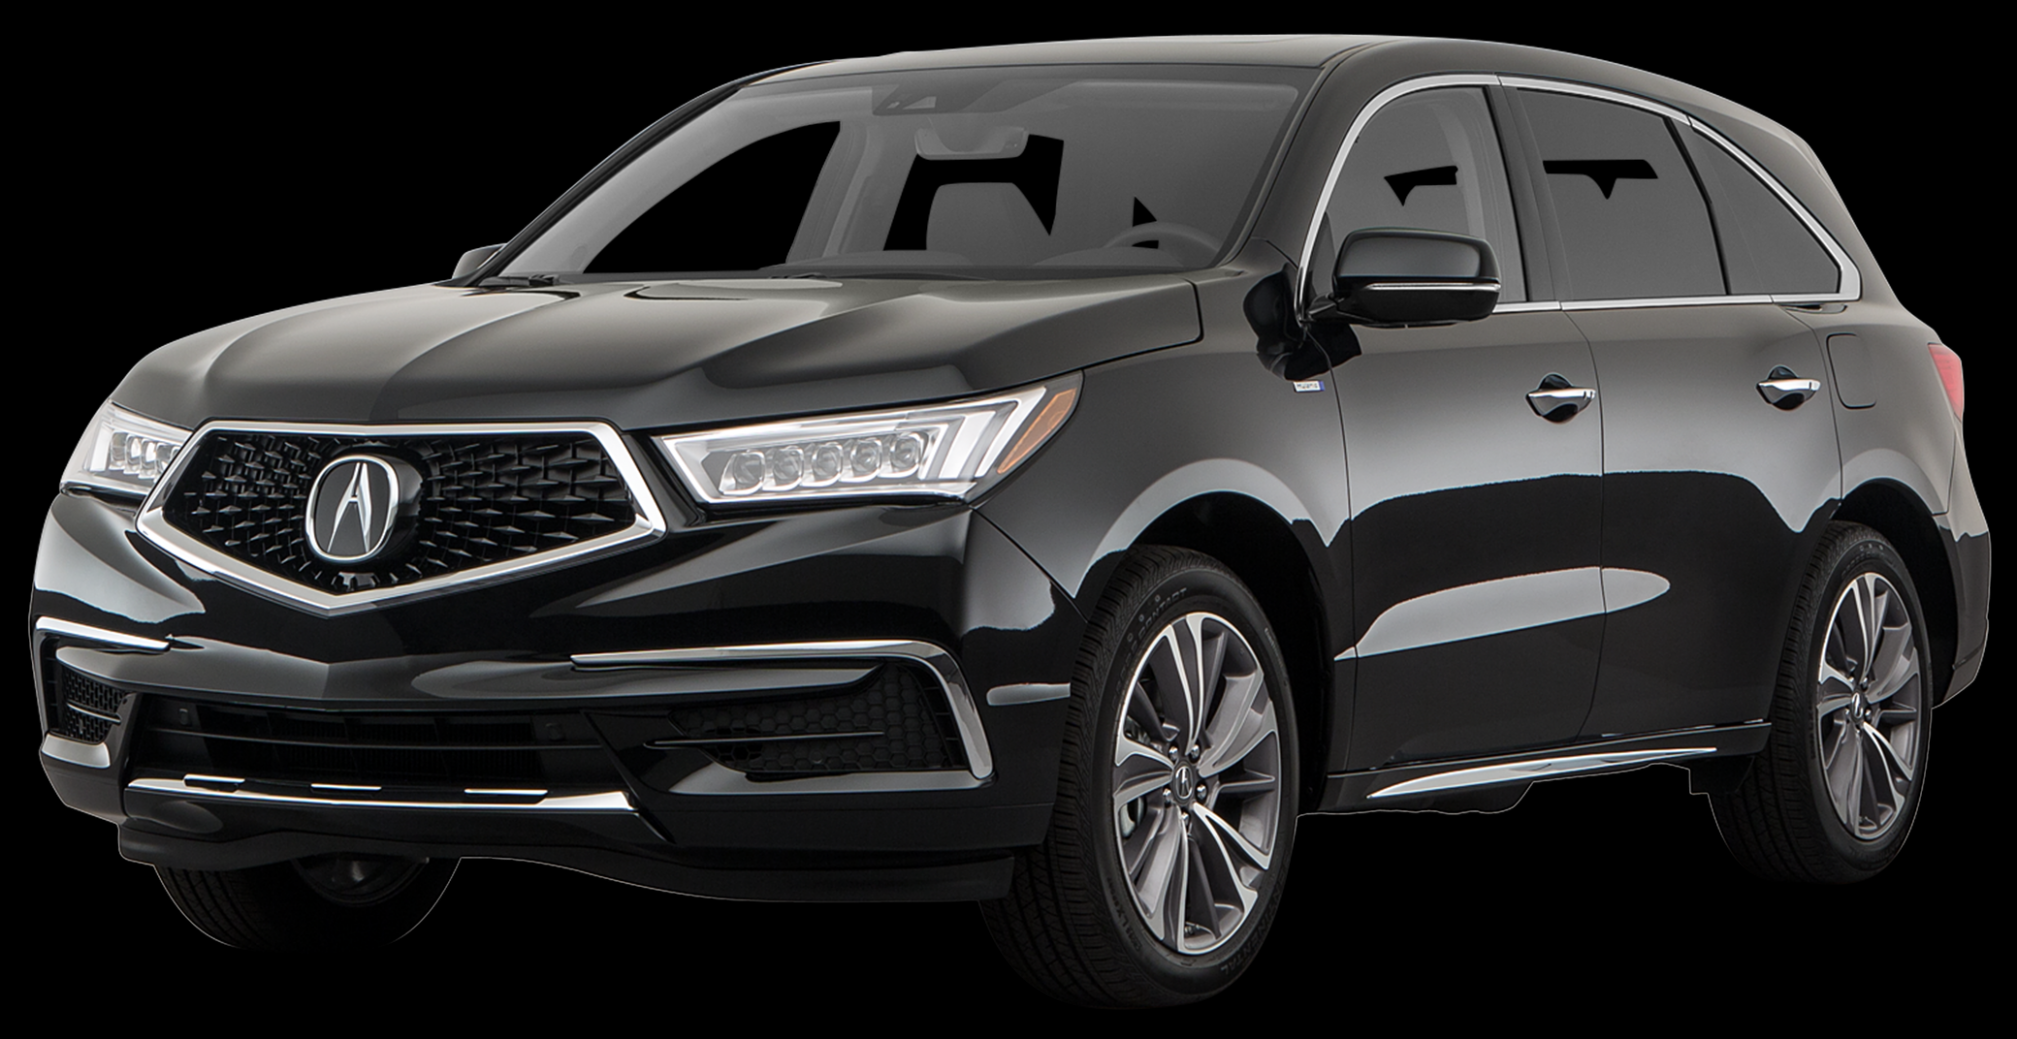 New 11 Acura MDX Specials & Lease Offers | Acura of Honolulu - 2020 acura mdx lease deals